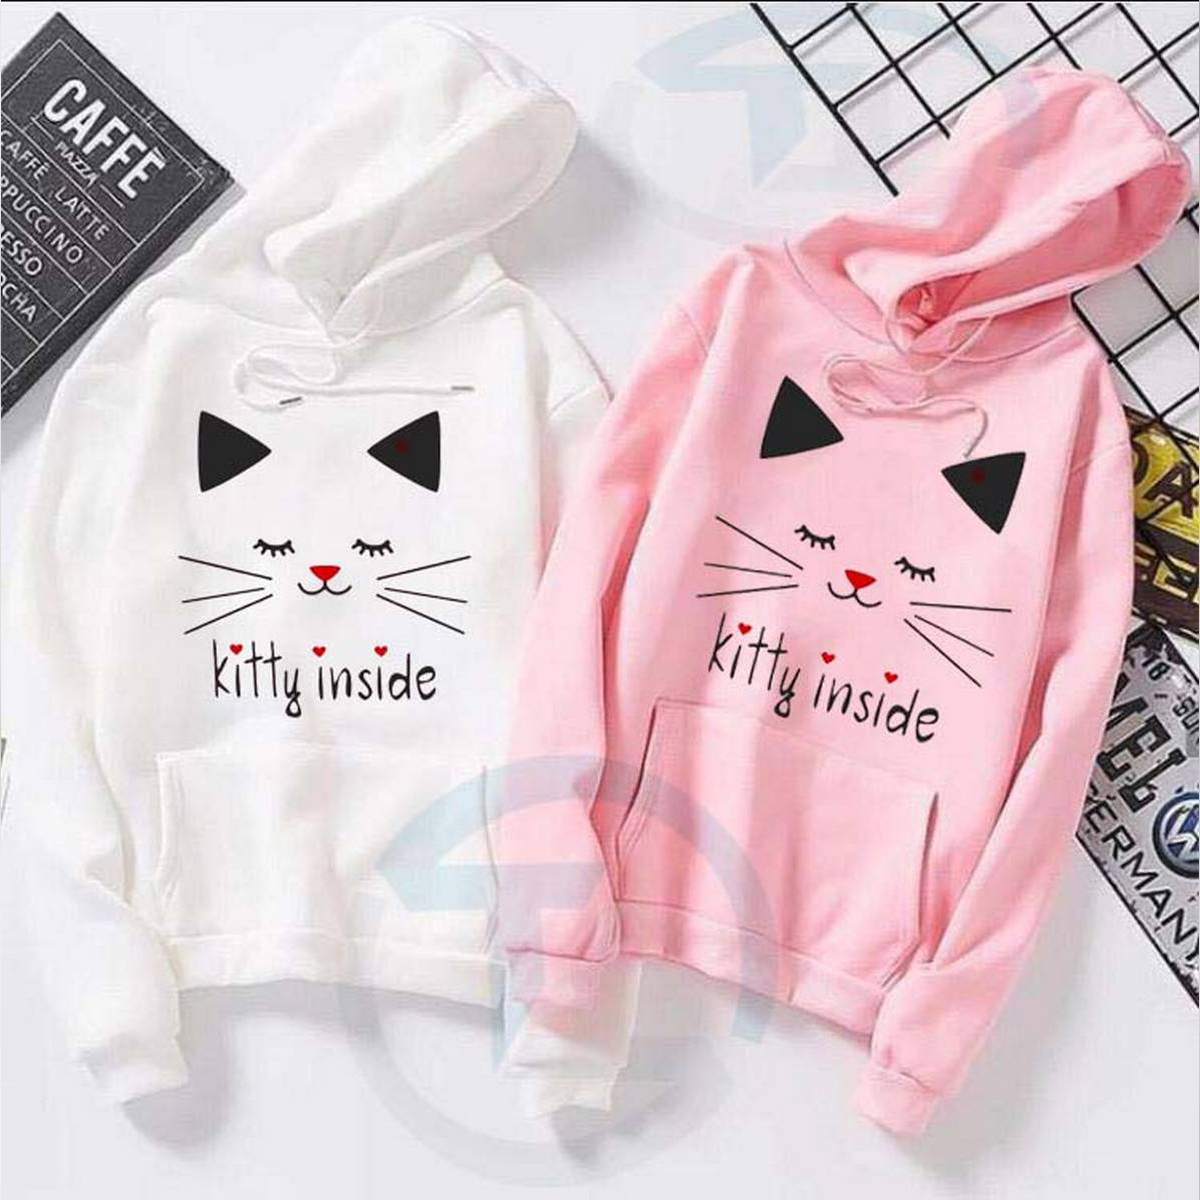 Hoddie for girls new and stylish design (Kitty Inside),Winter Wear ,Export Quality , Round Neck